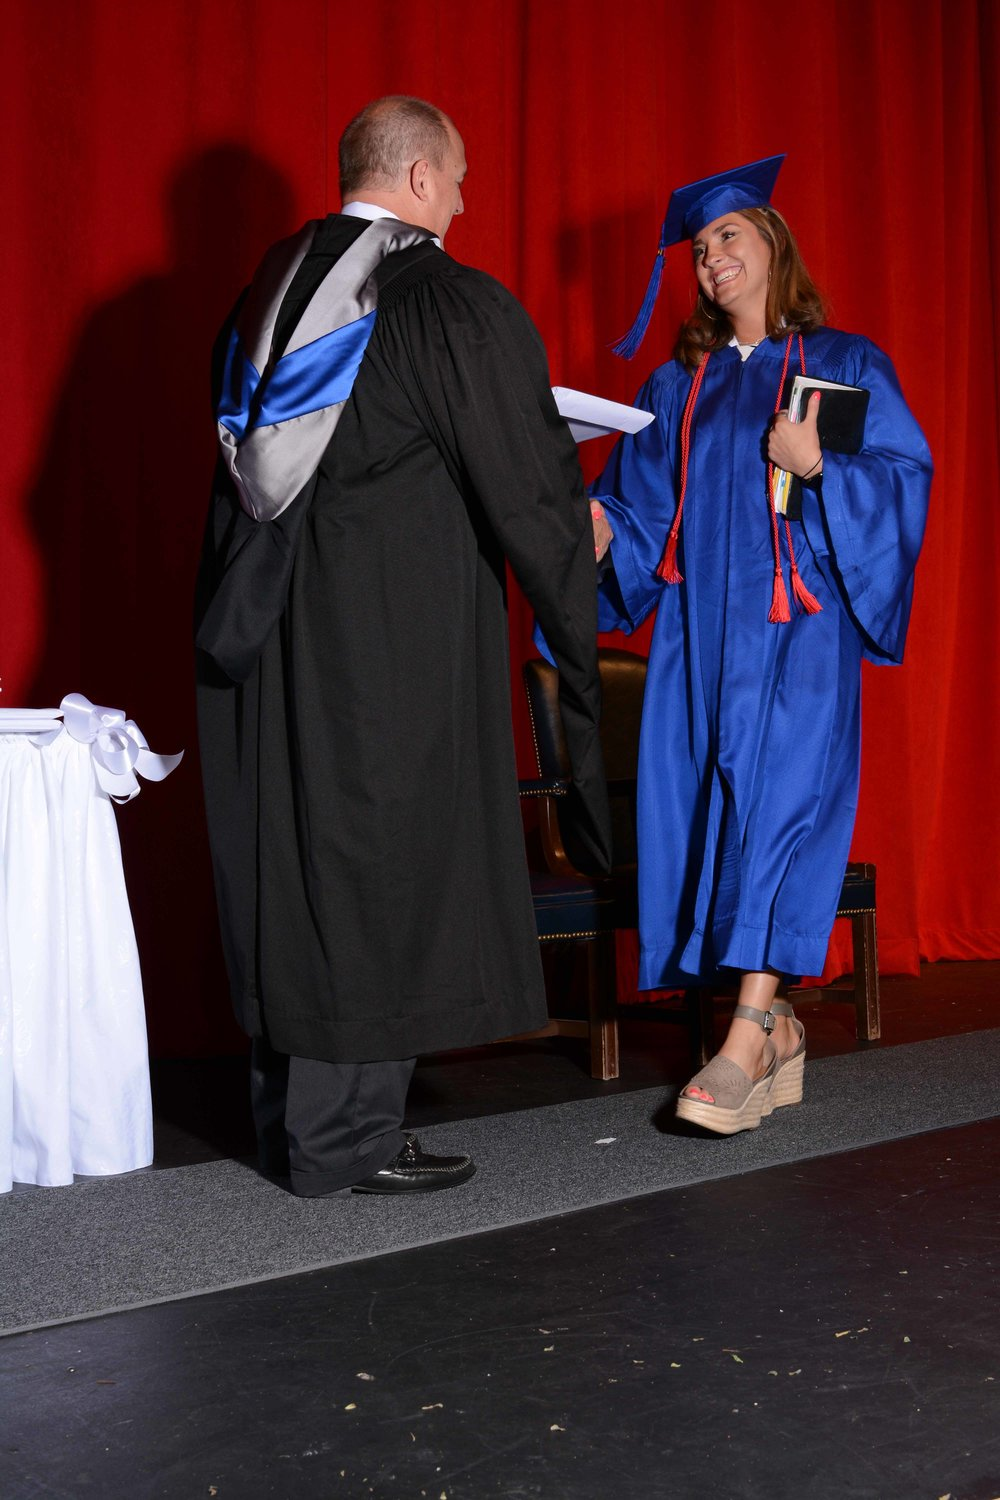 May15 HardingGraduation35.jpg